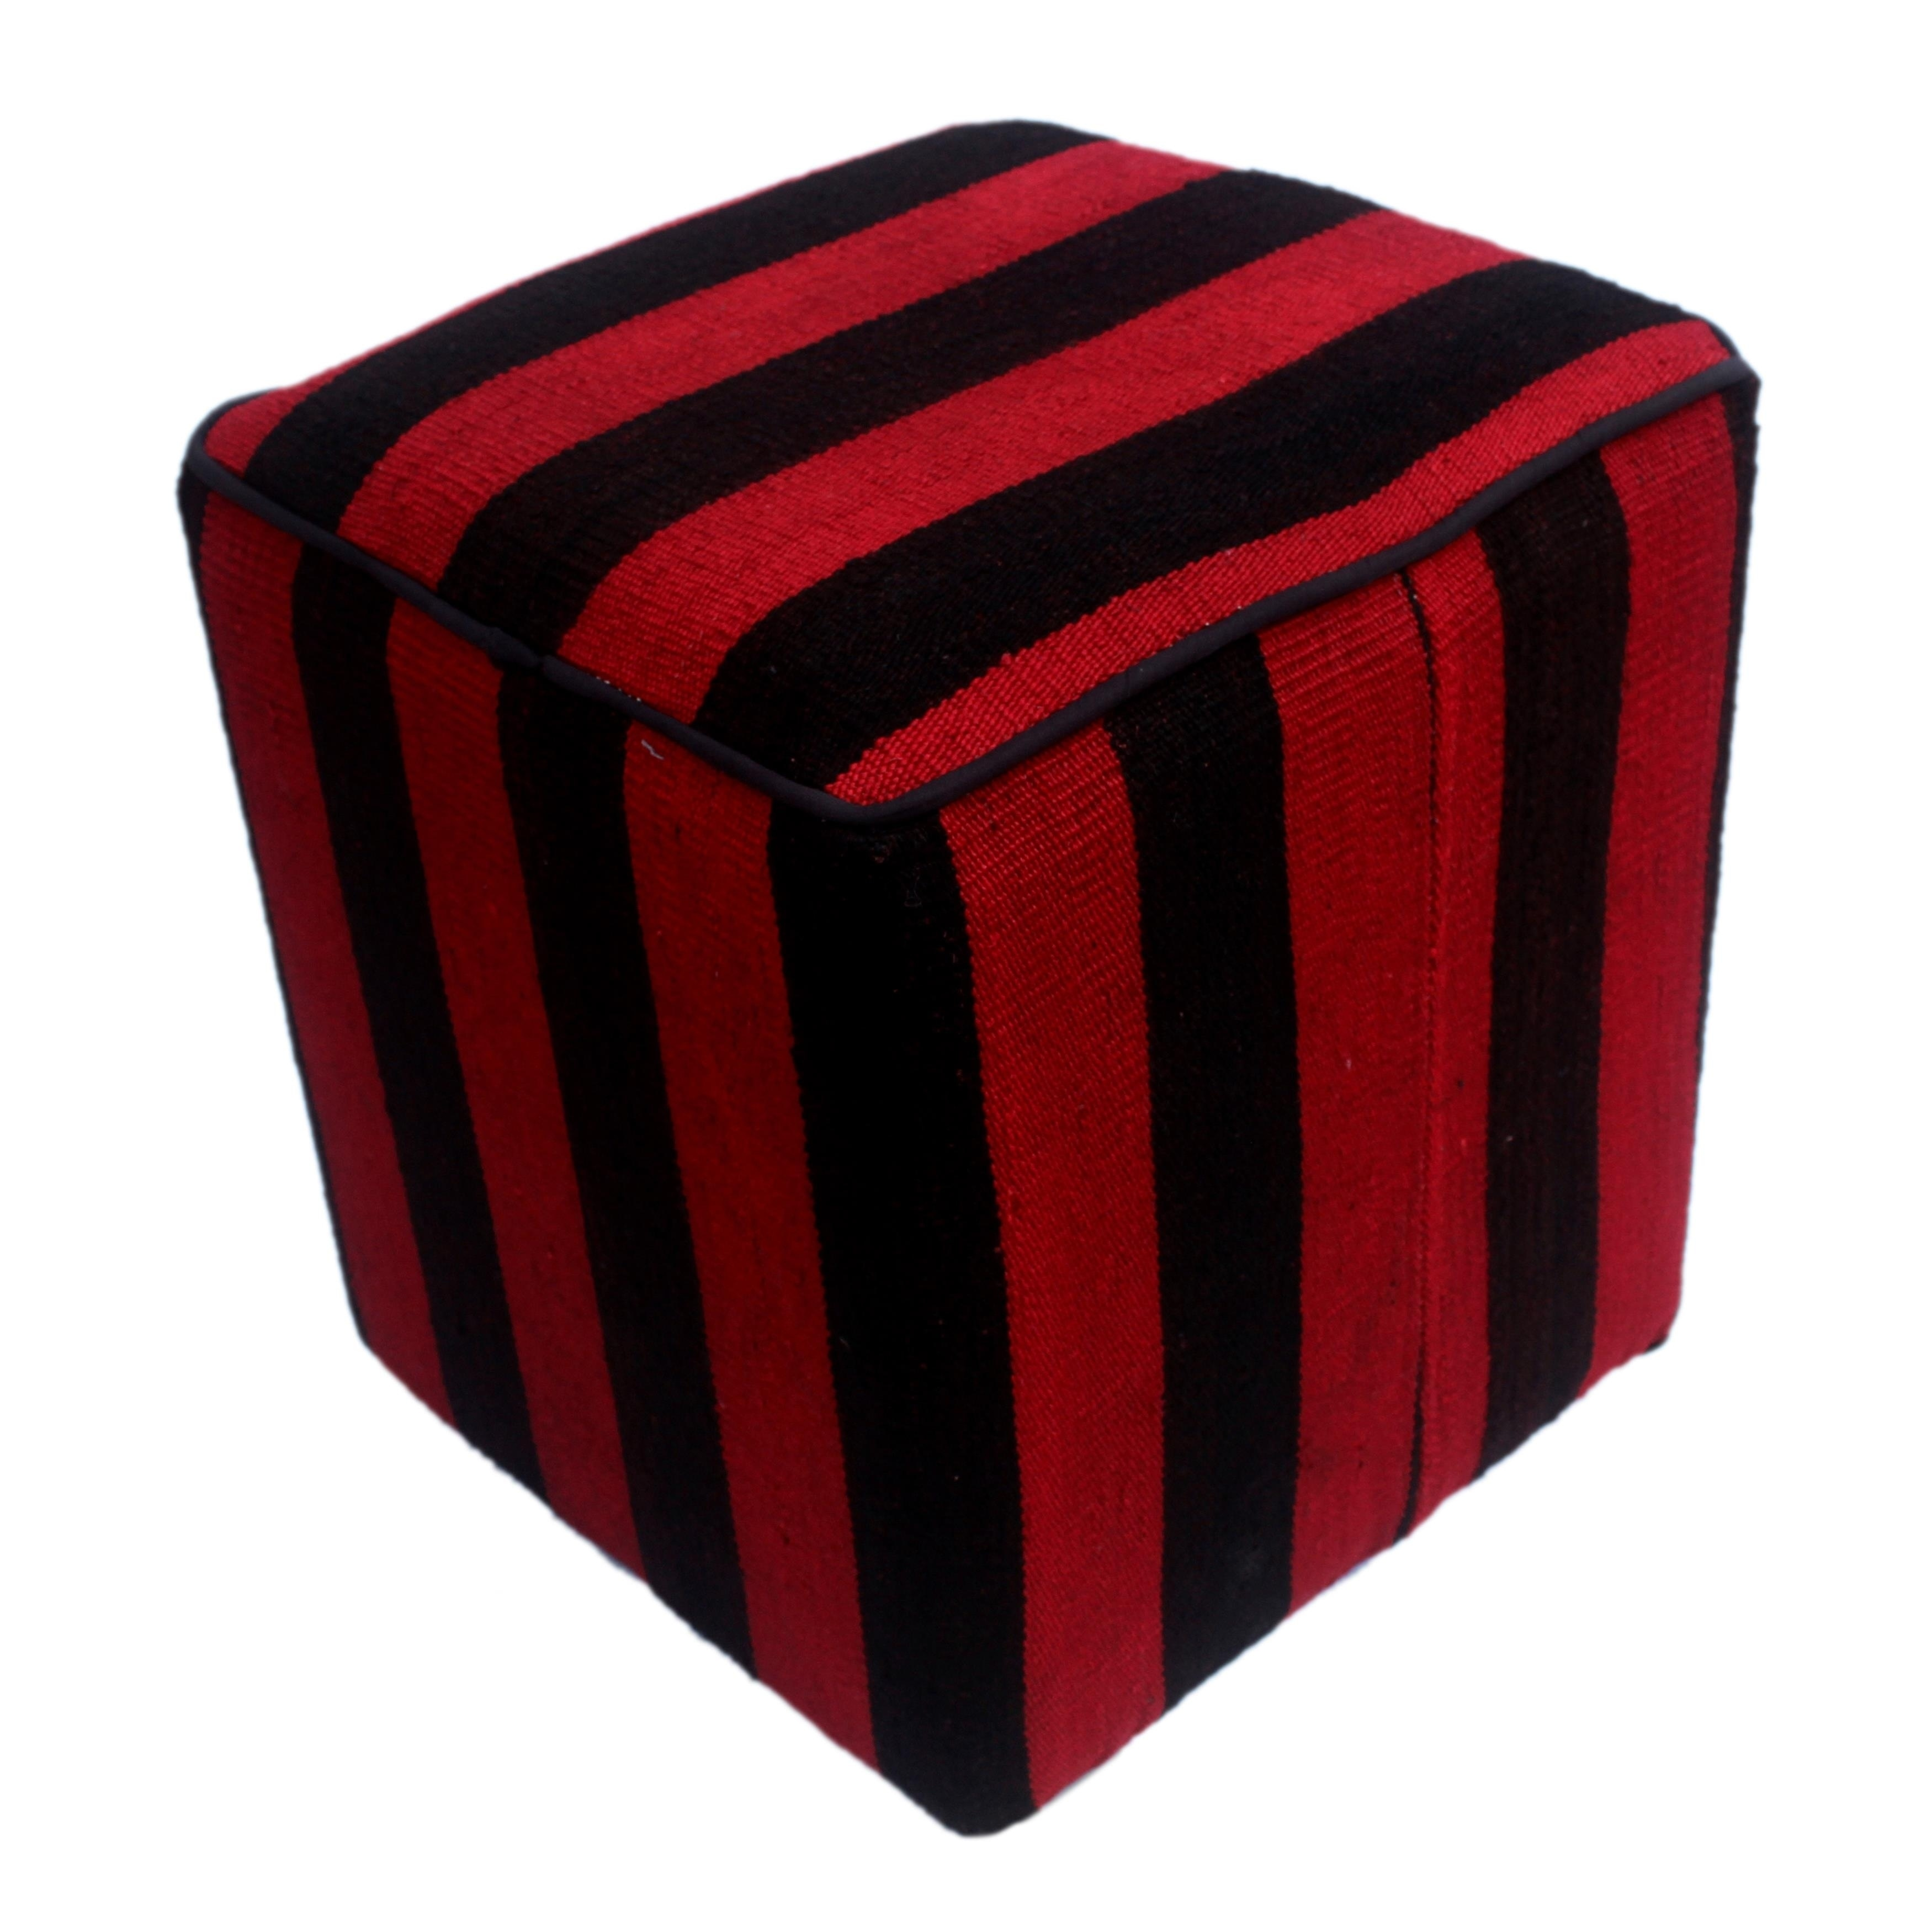 Arshs Dona Handmade Red Black Wool Kilim Upholstered Ottoman On Free Shipping Today 22883559